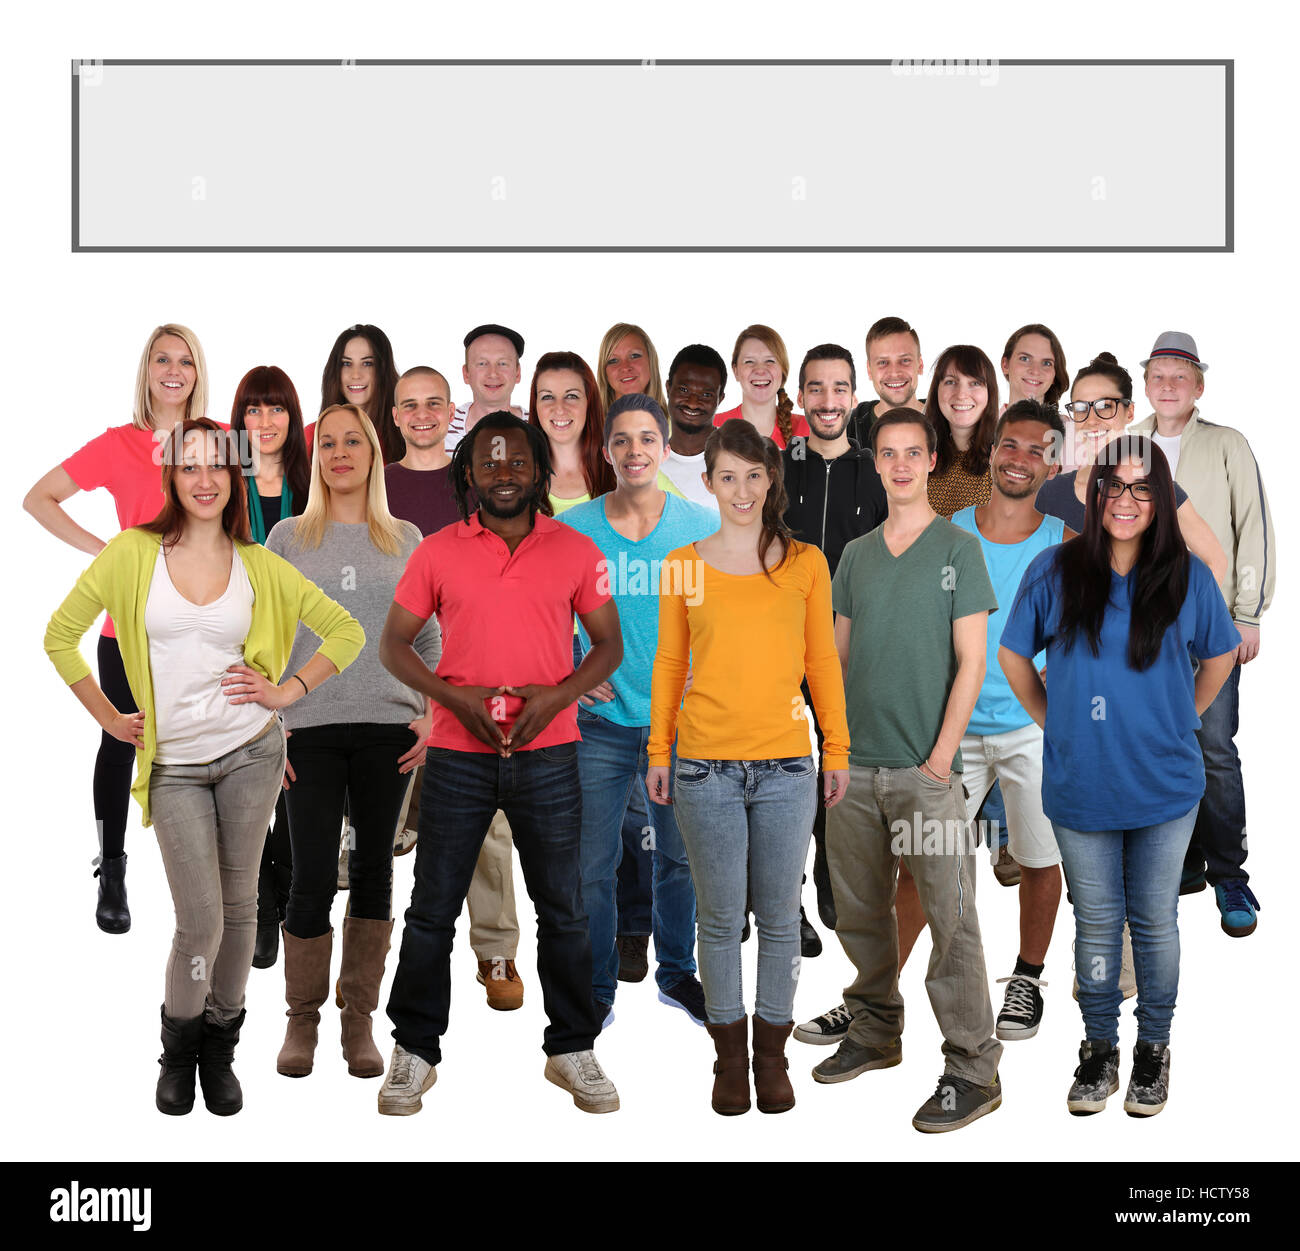 Group of young smiling people searching empty blank search bar internet isolated on a white background - Stock Image